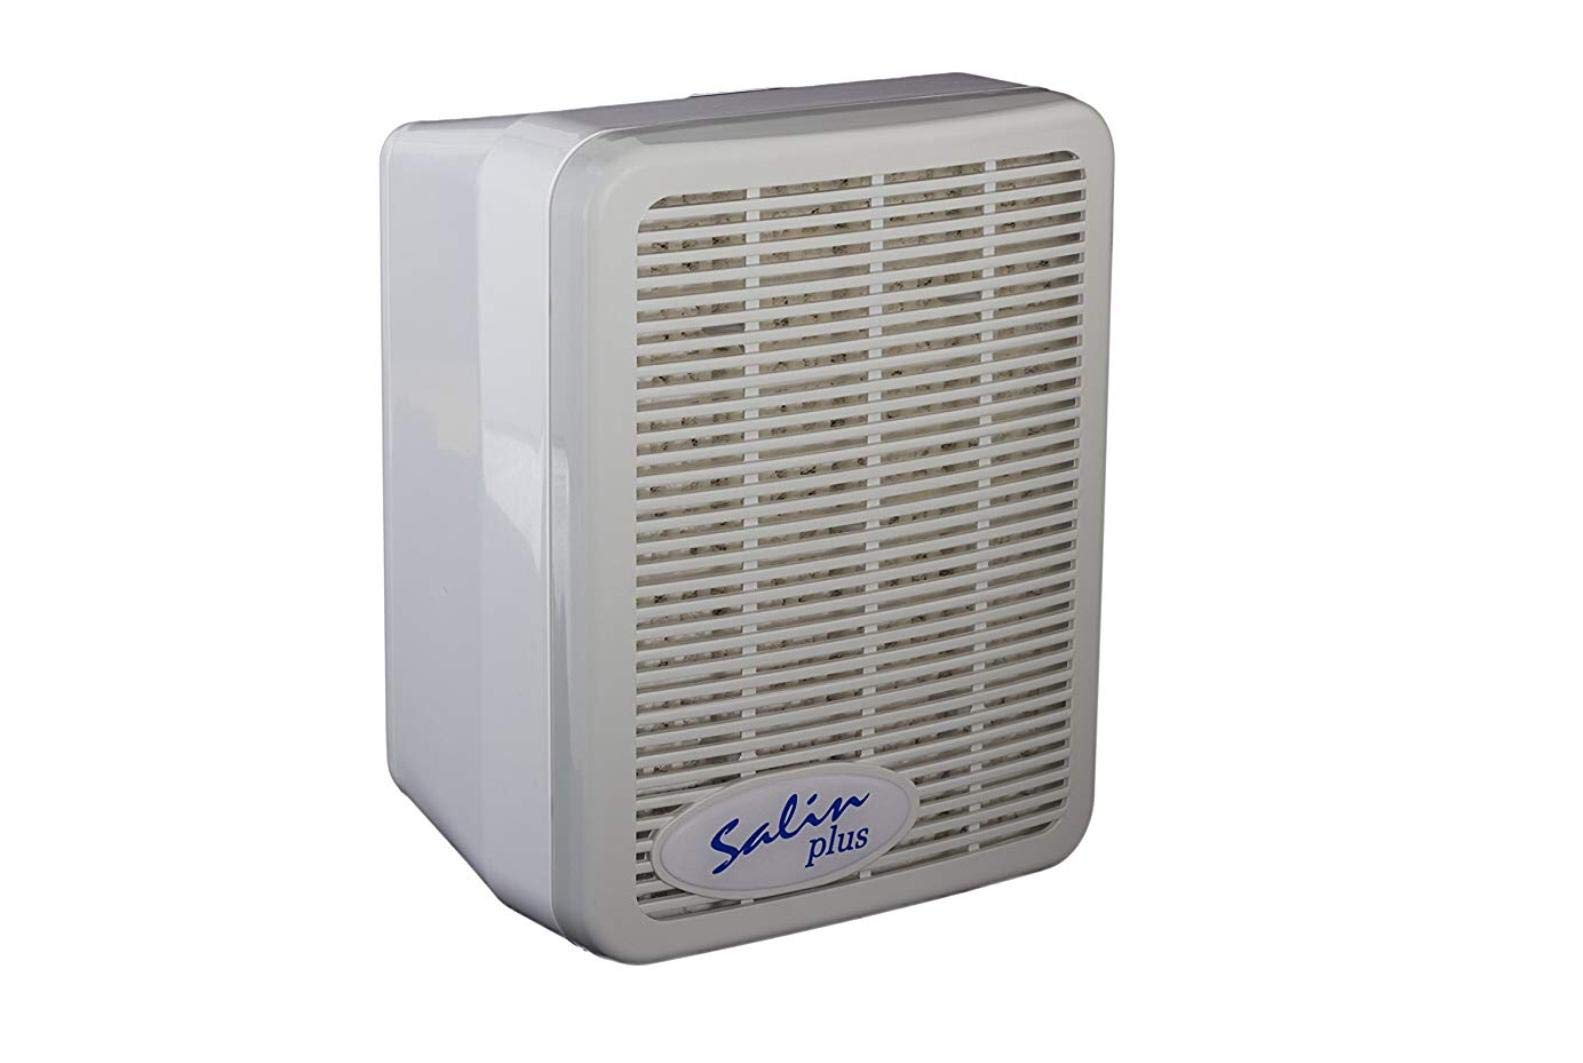 Salin Plus Salt Therapy Air Quality Purifier Filter: Buy Online at Best  Price in UAE - Amazon.ae